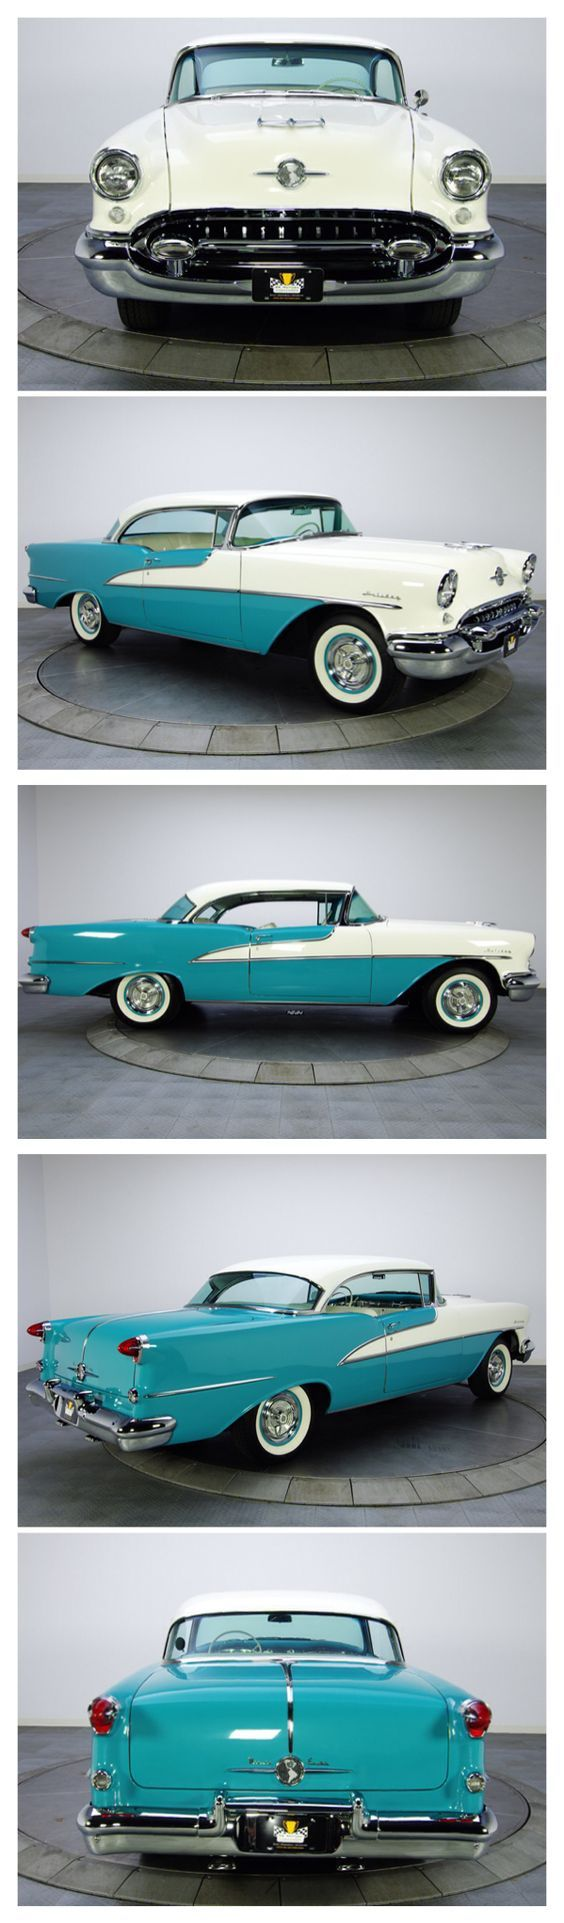 1955 dodge royal lancer convertible cream black fvr cars - 1955 Oldsmobile 98 Holiday Coupe Our Family Car The Globe And Plane Are Really Early Memories For Me